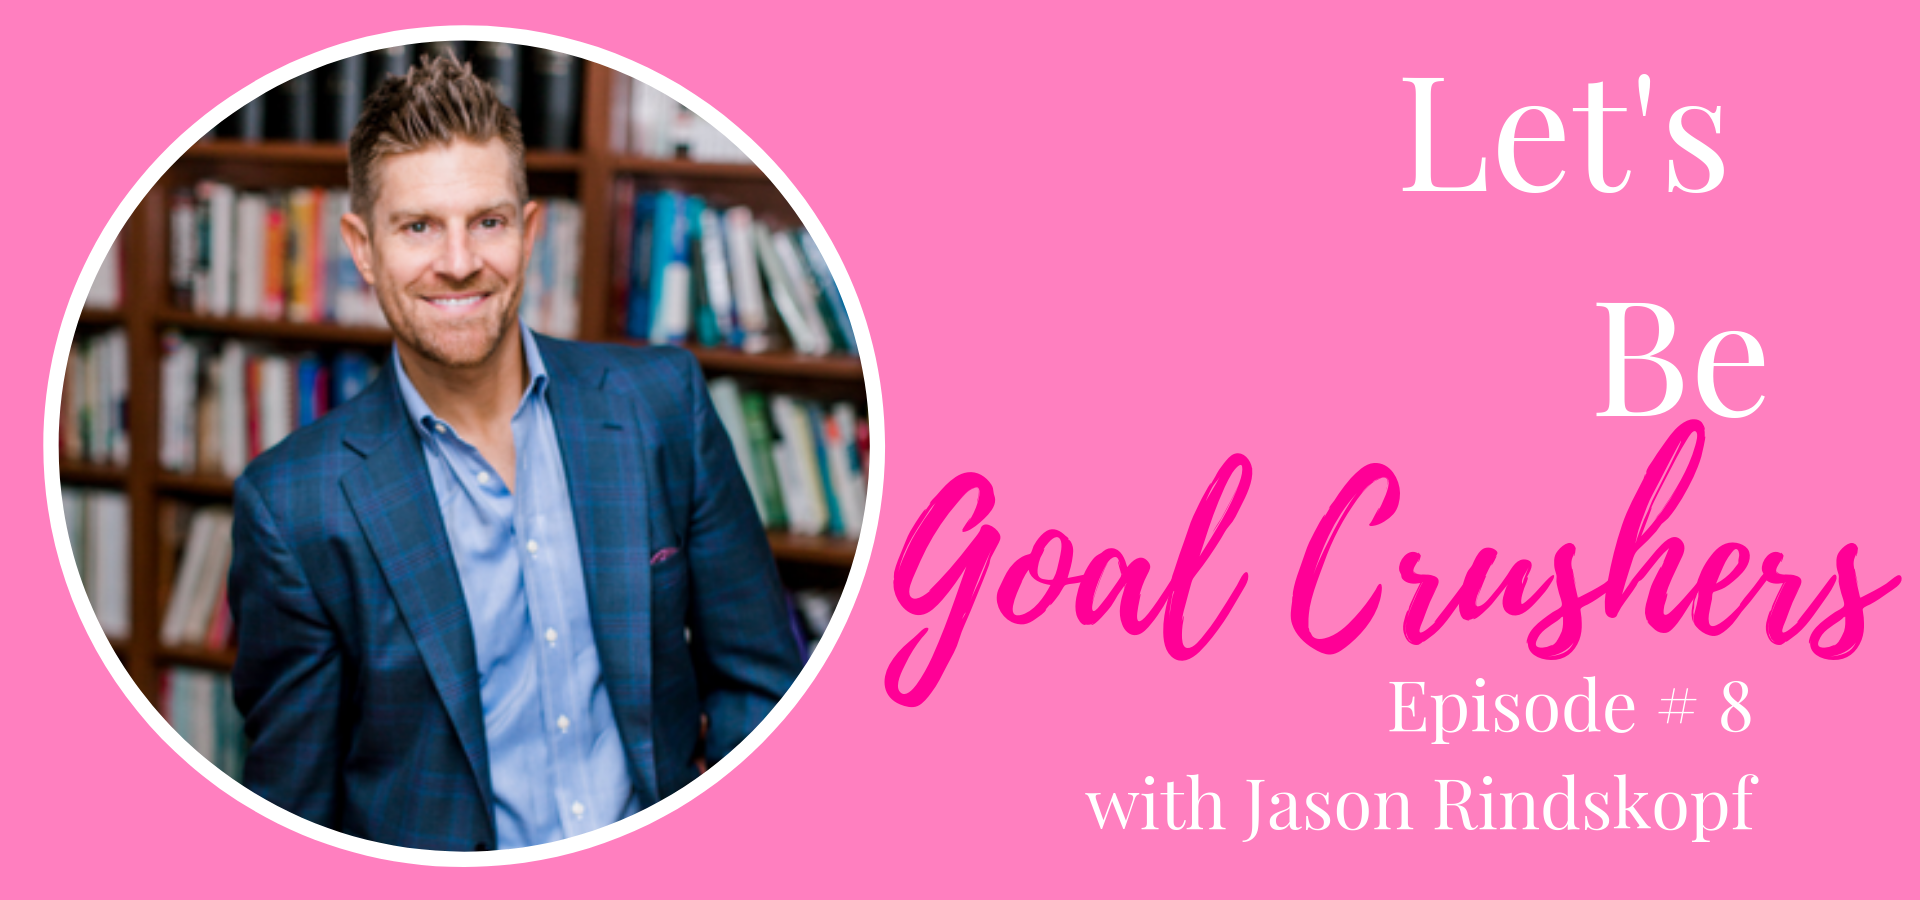 Let's be inspired podcast, Let's be goal crushers with Financial Advisor, Jason Rindskopf. Speaking about creating goals and crushing them.